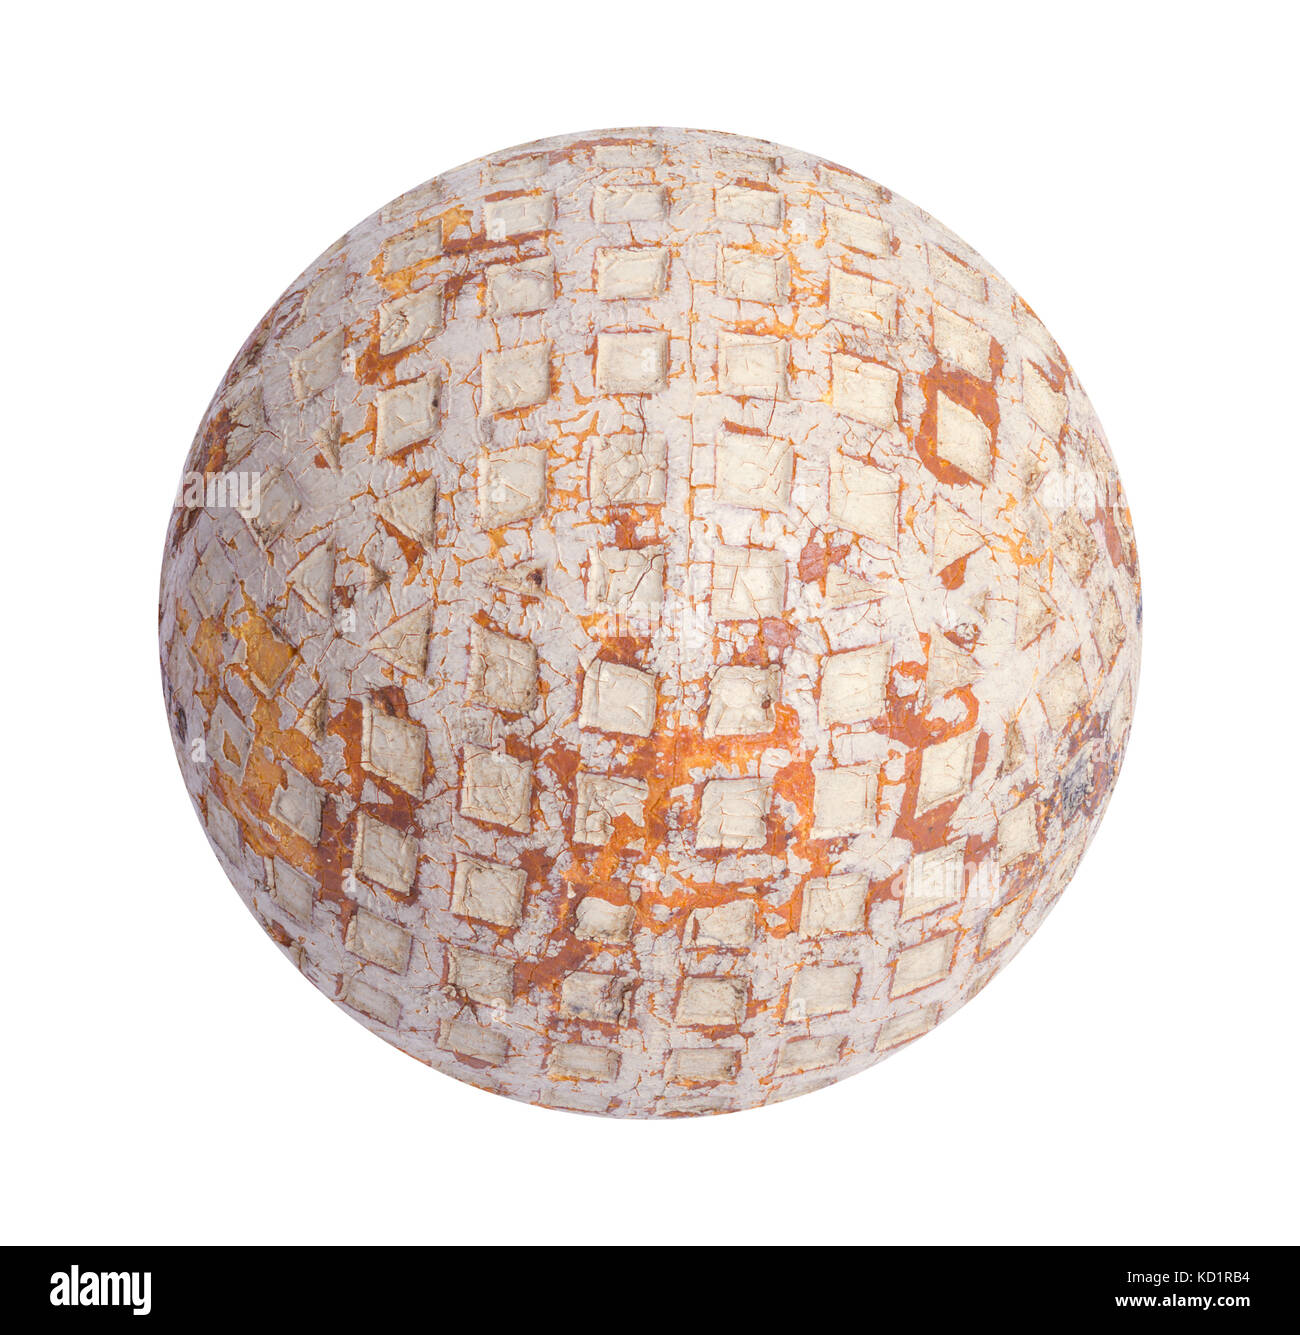 Old Wooden Golf Ball Cut Out on White. - Stock Image